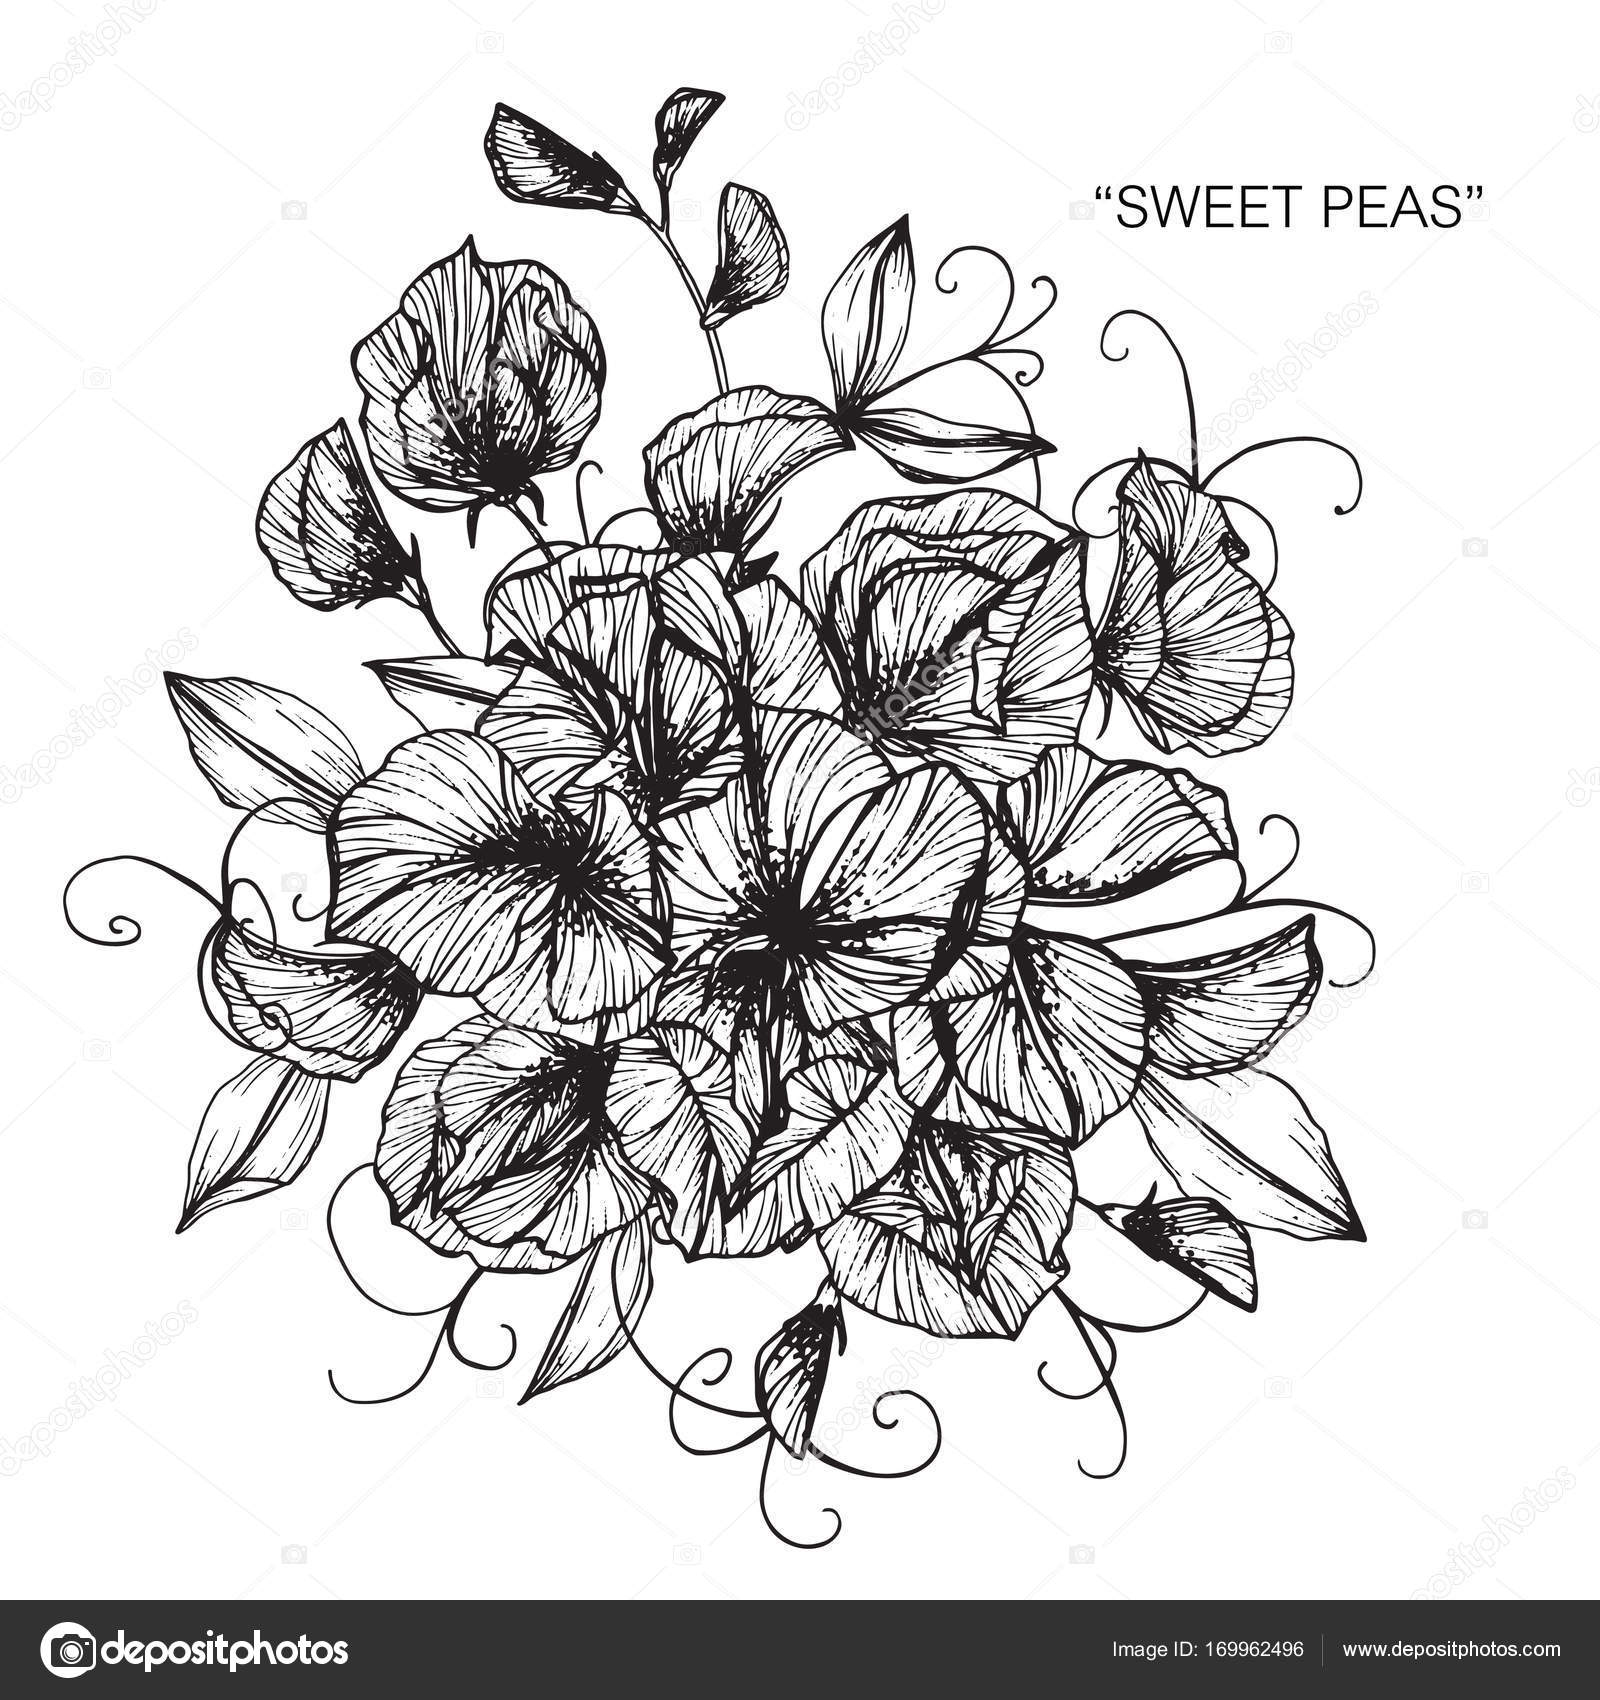 Bouquet of sweet peas flowers drawing stock vector suwi19 bouquet of sweet peas flowers drawing stock vector izmirmasajfo